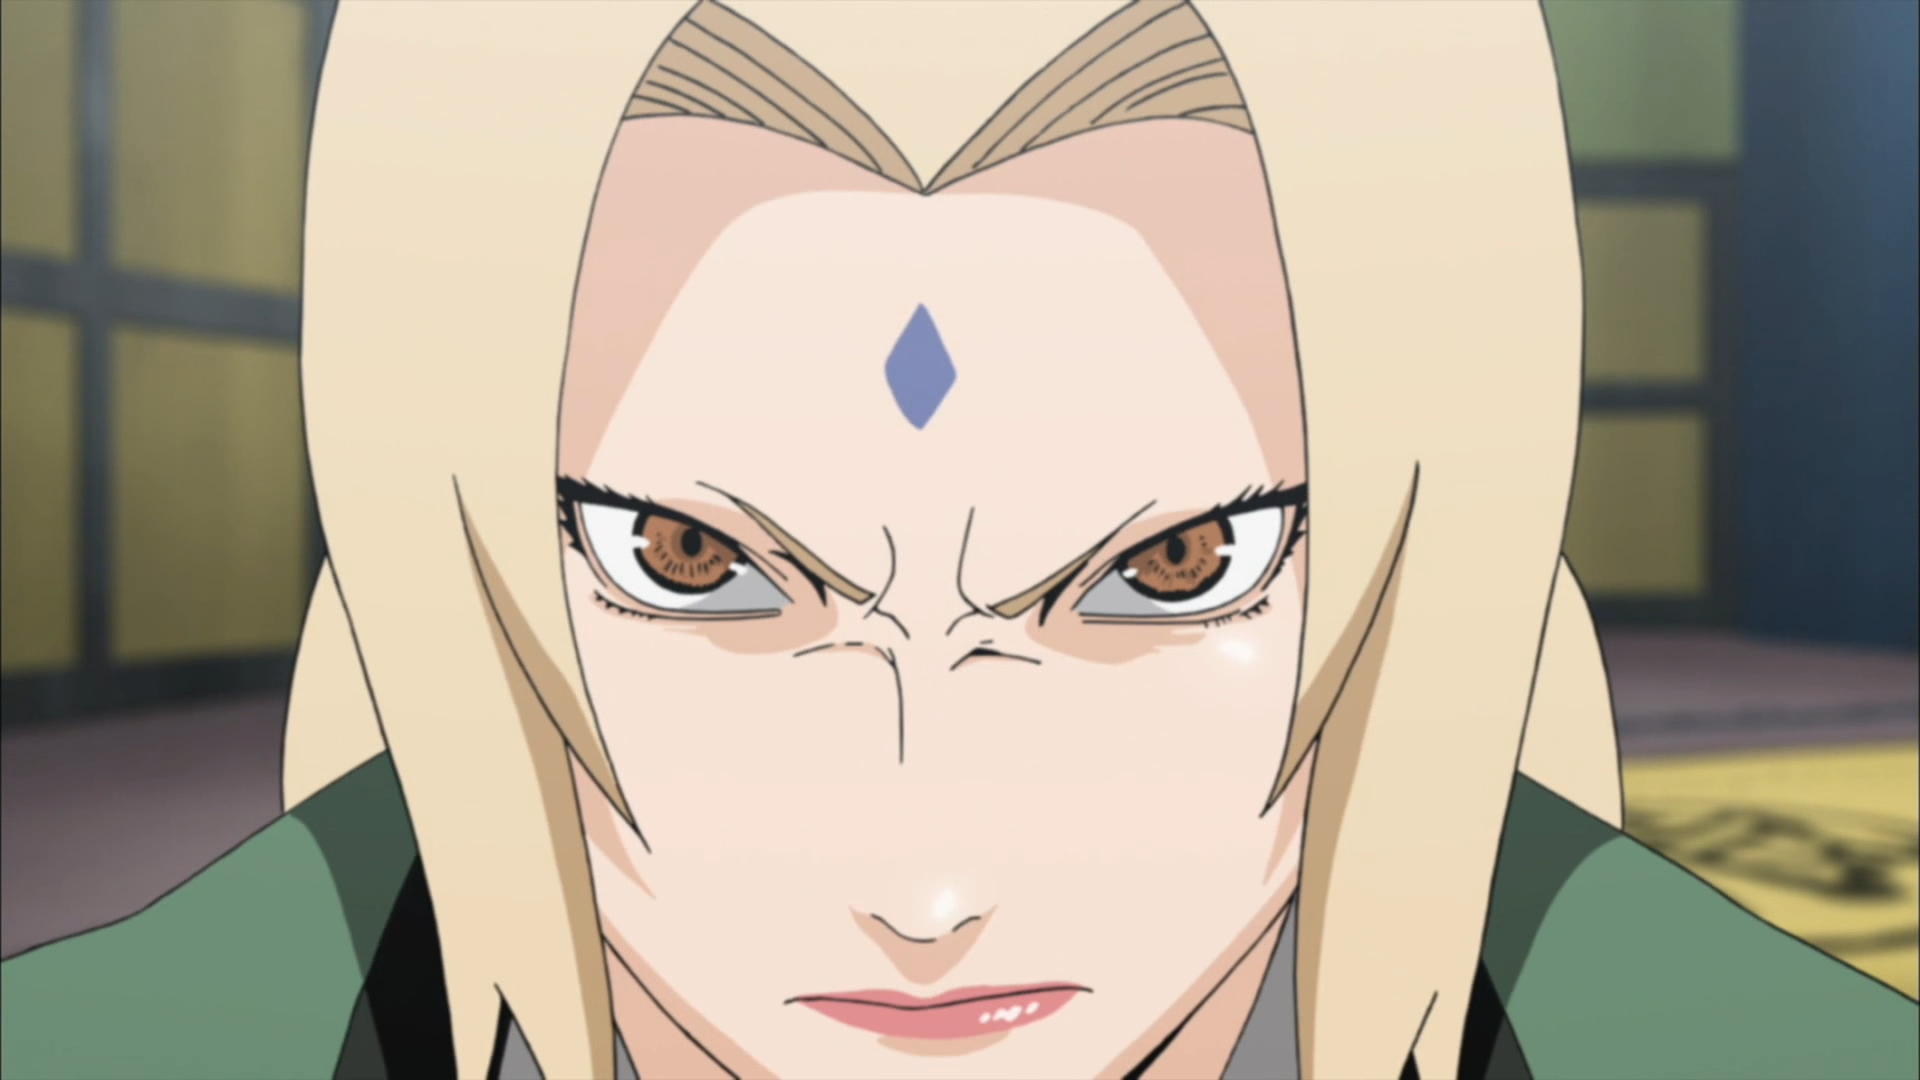 I'm never going back, the past is in the past Tsunade_decide_sair_do_QG